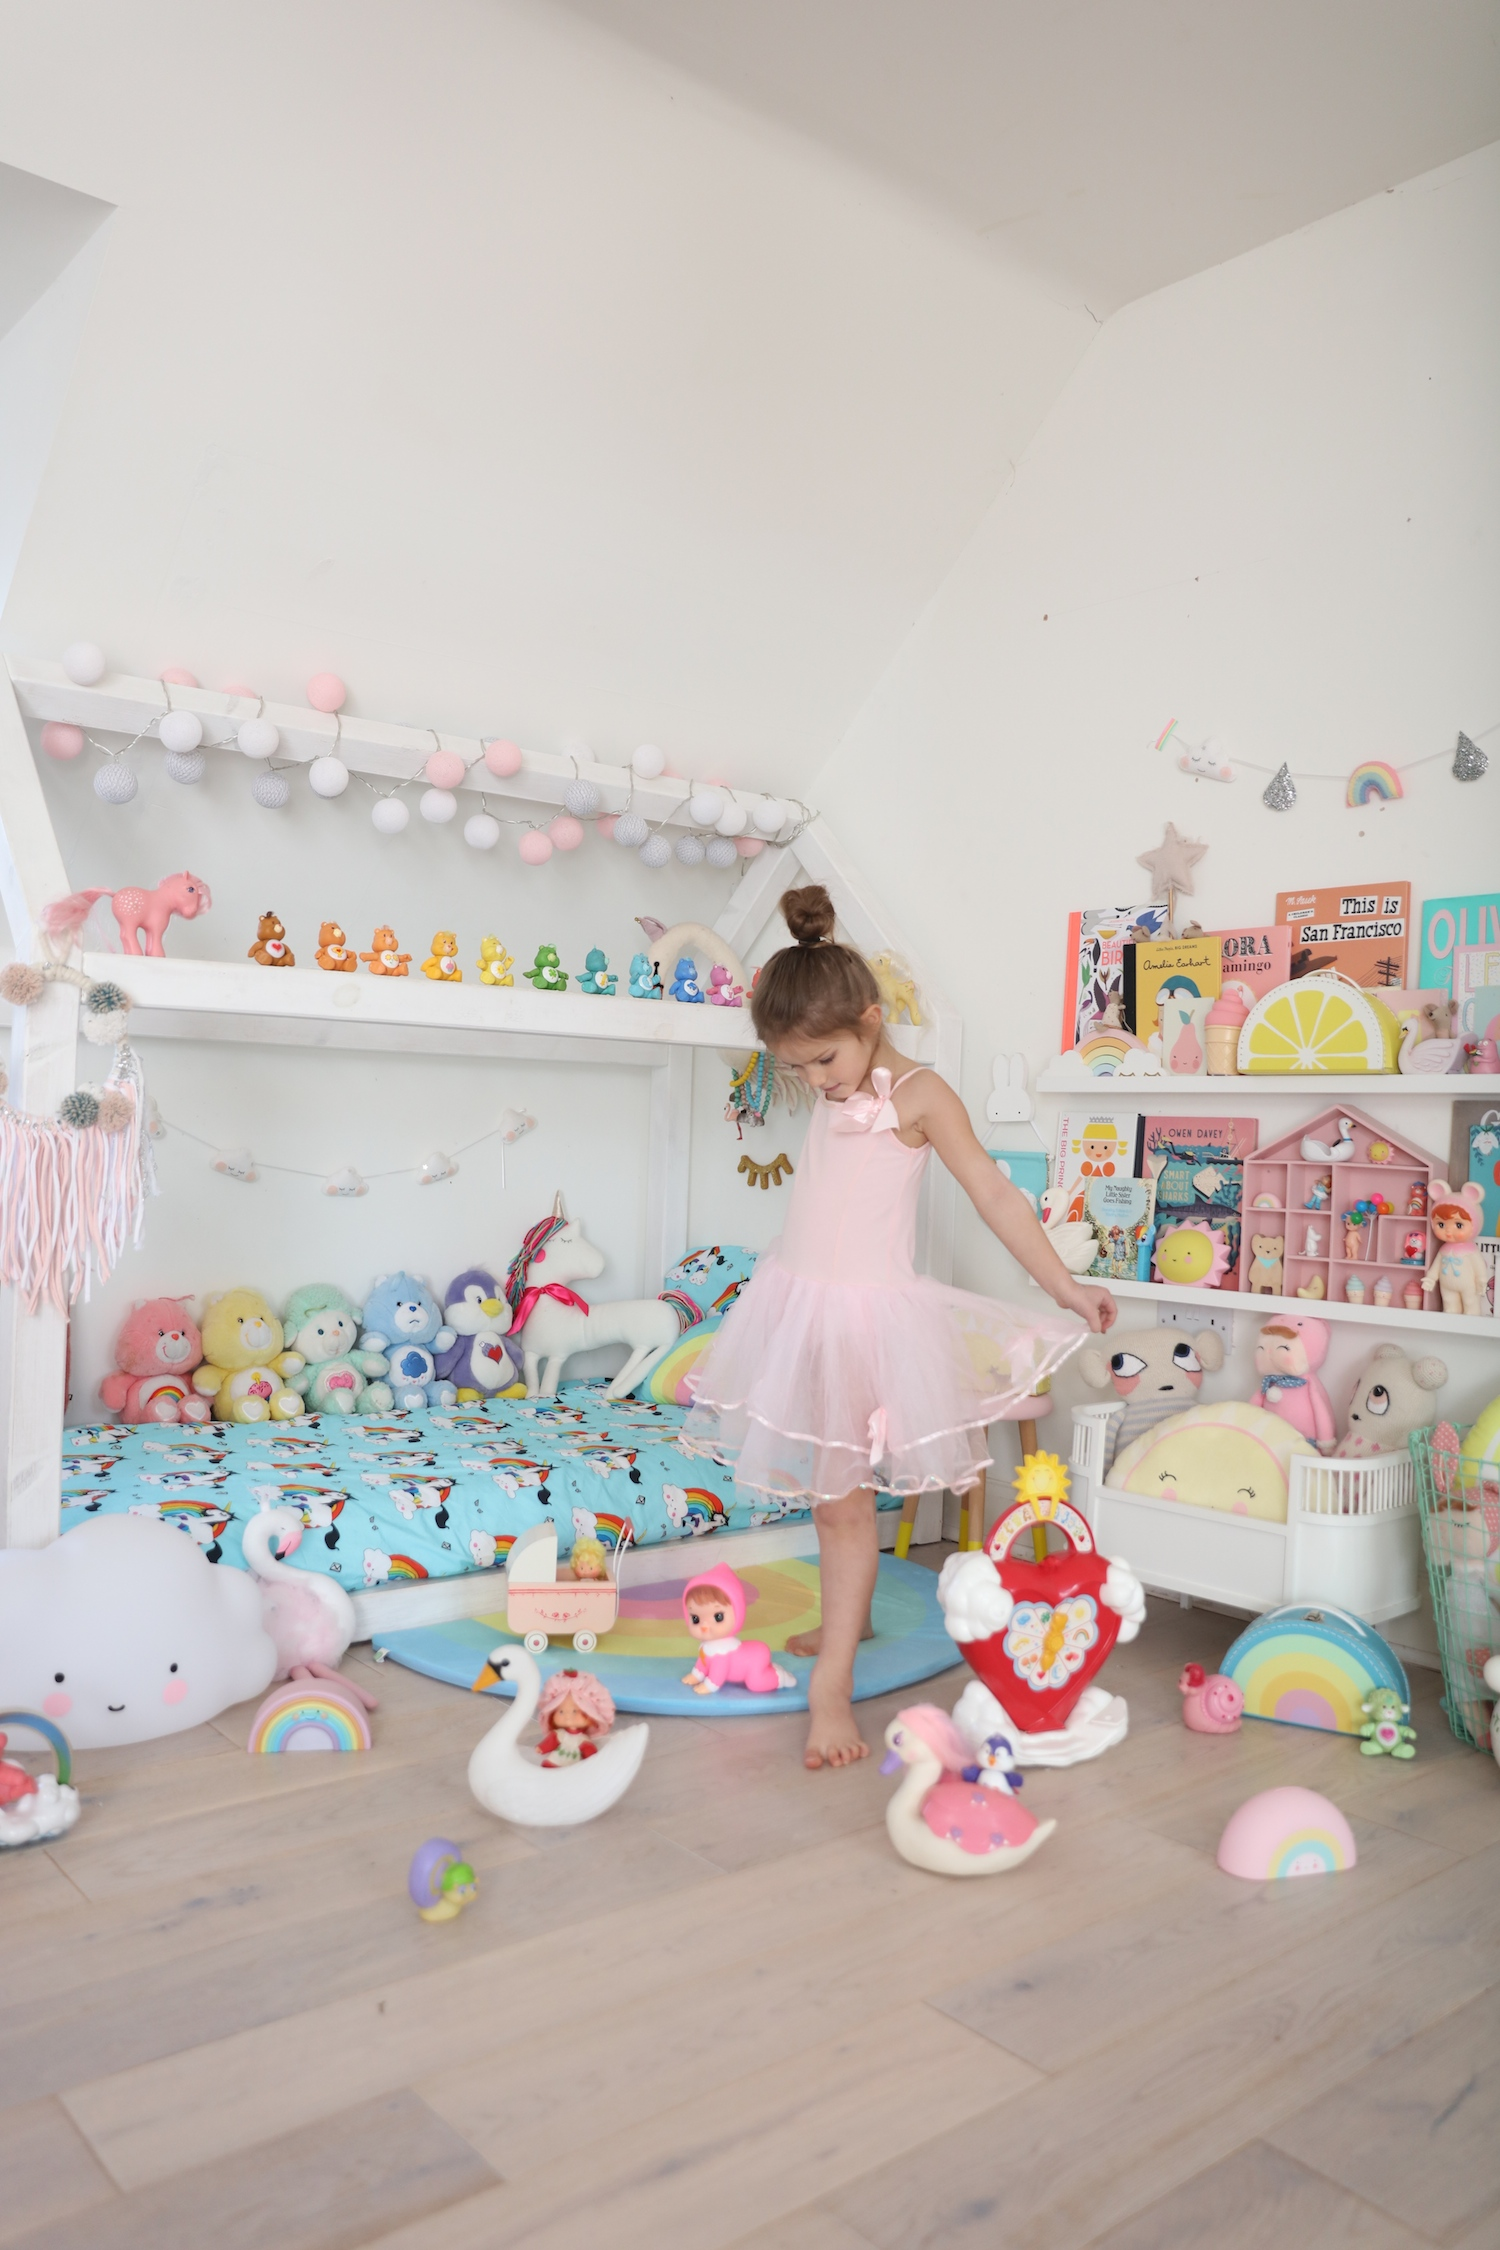 chloeuberkid_bedroom_care_bears_rainbow_unicorns